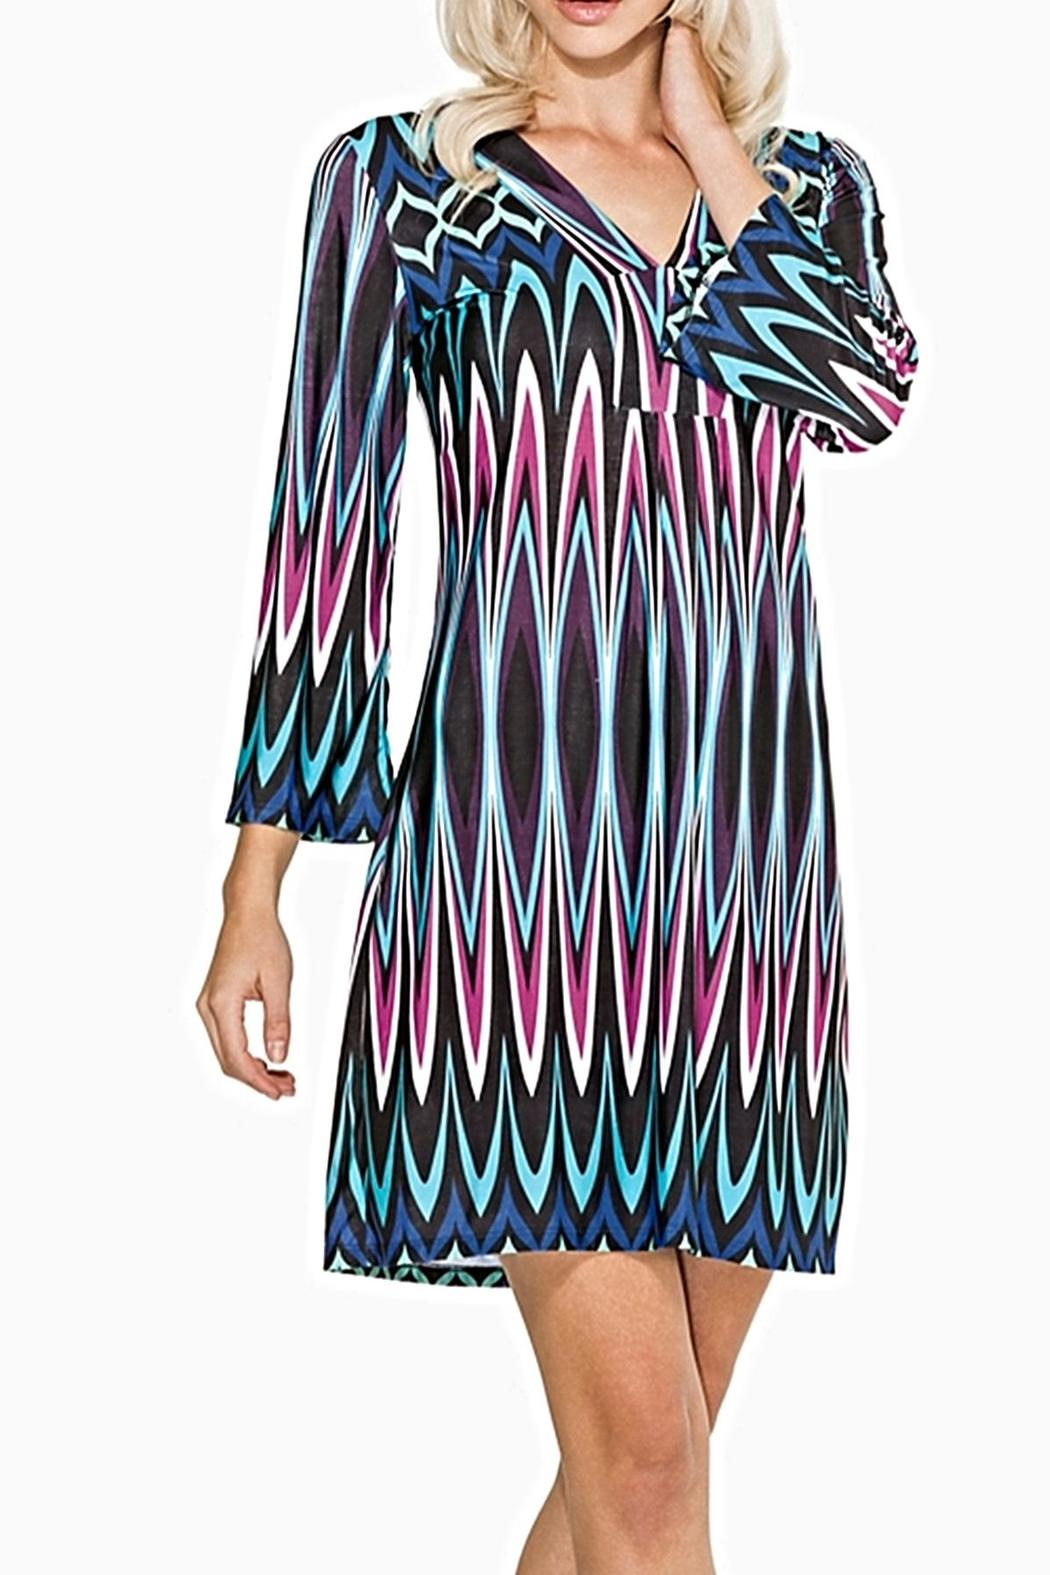 Adore Apparel Colorful Chevron Tunic - Front Cropped Image